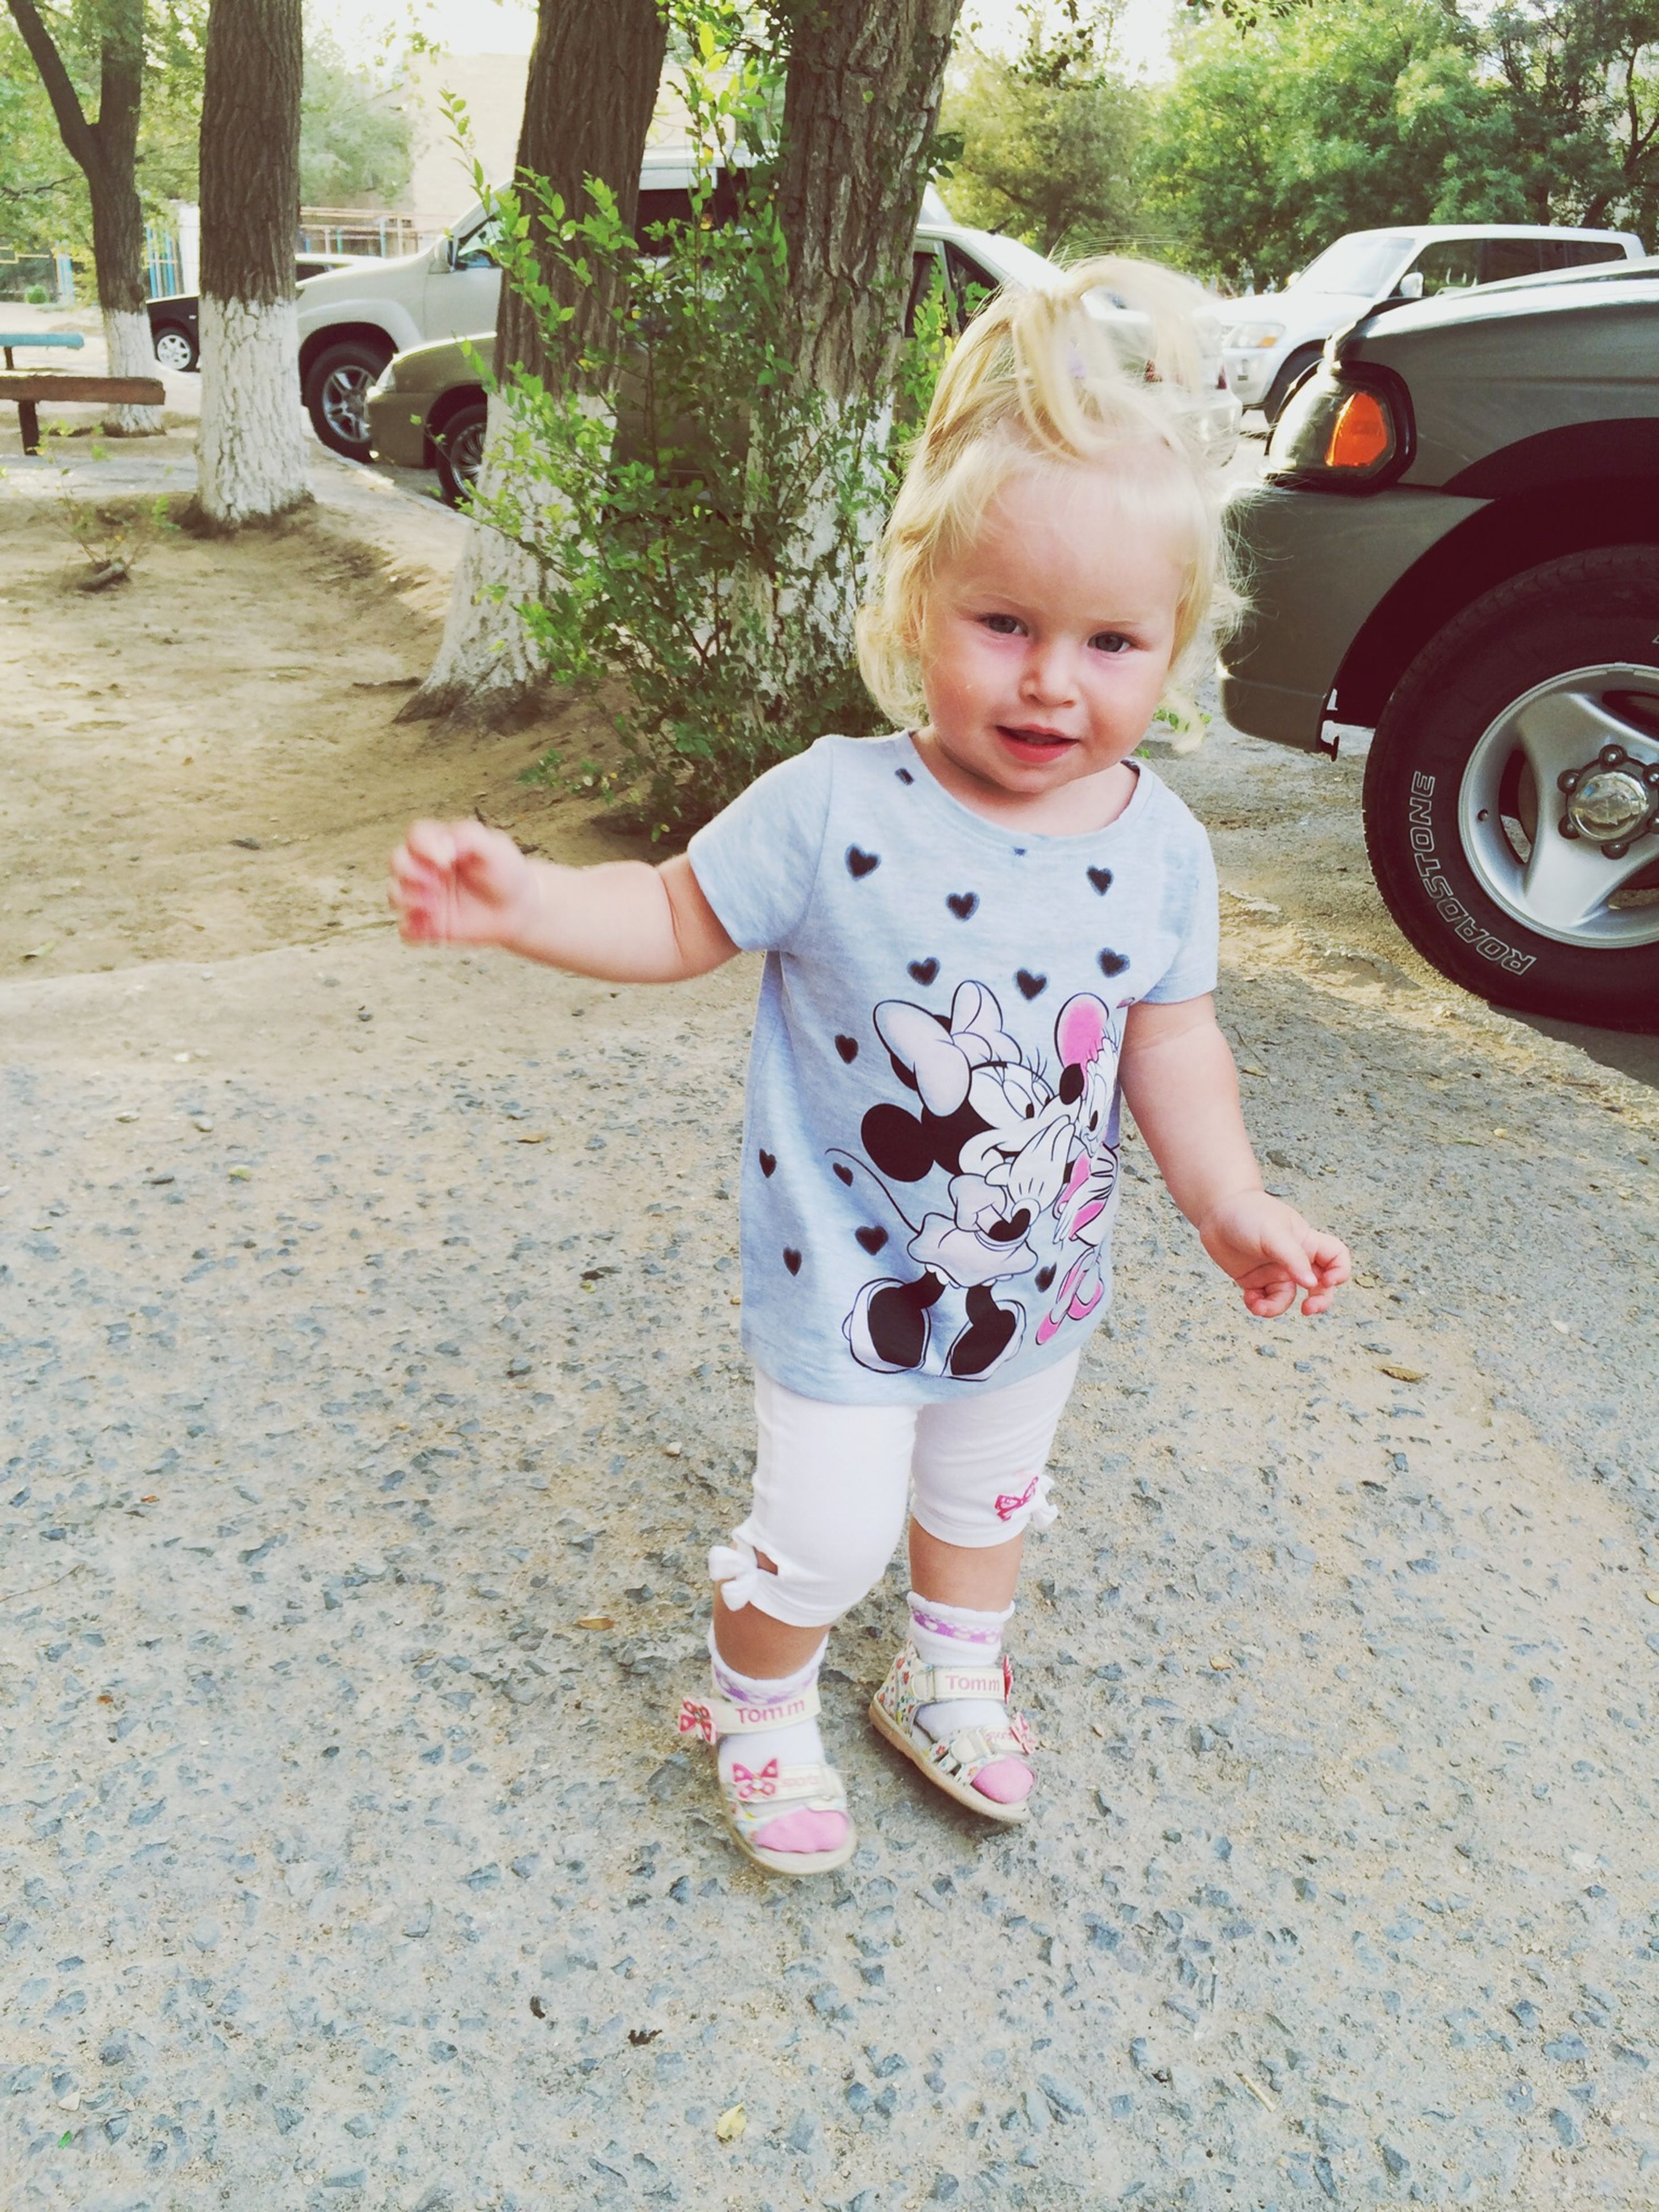 childhood, elementary age, innocence, cute, girls, person, boys, full length, casual clothing, lifestyles, leisure activity, street, playful, preschool age, happiness, toddler, park - man made space, playing